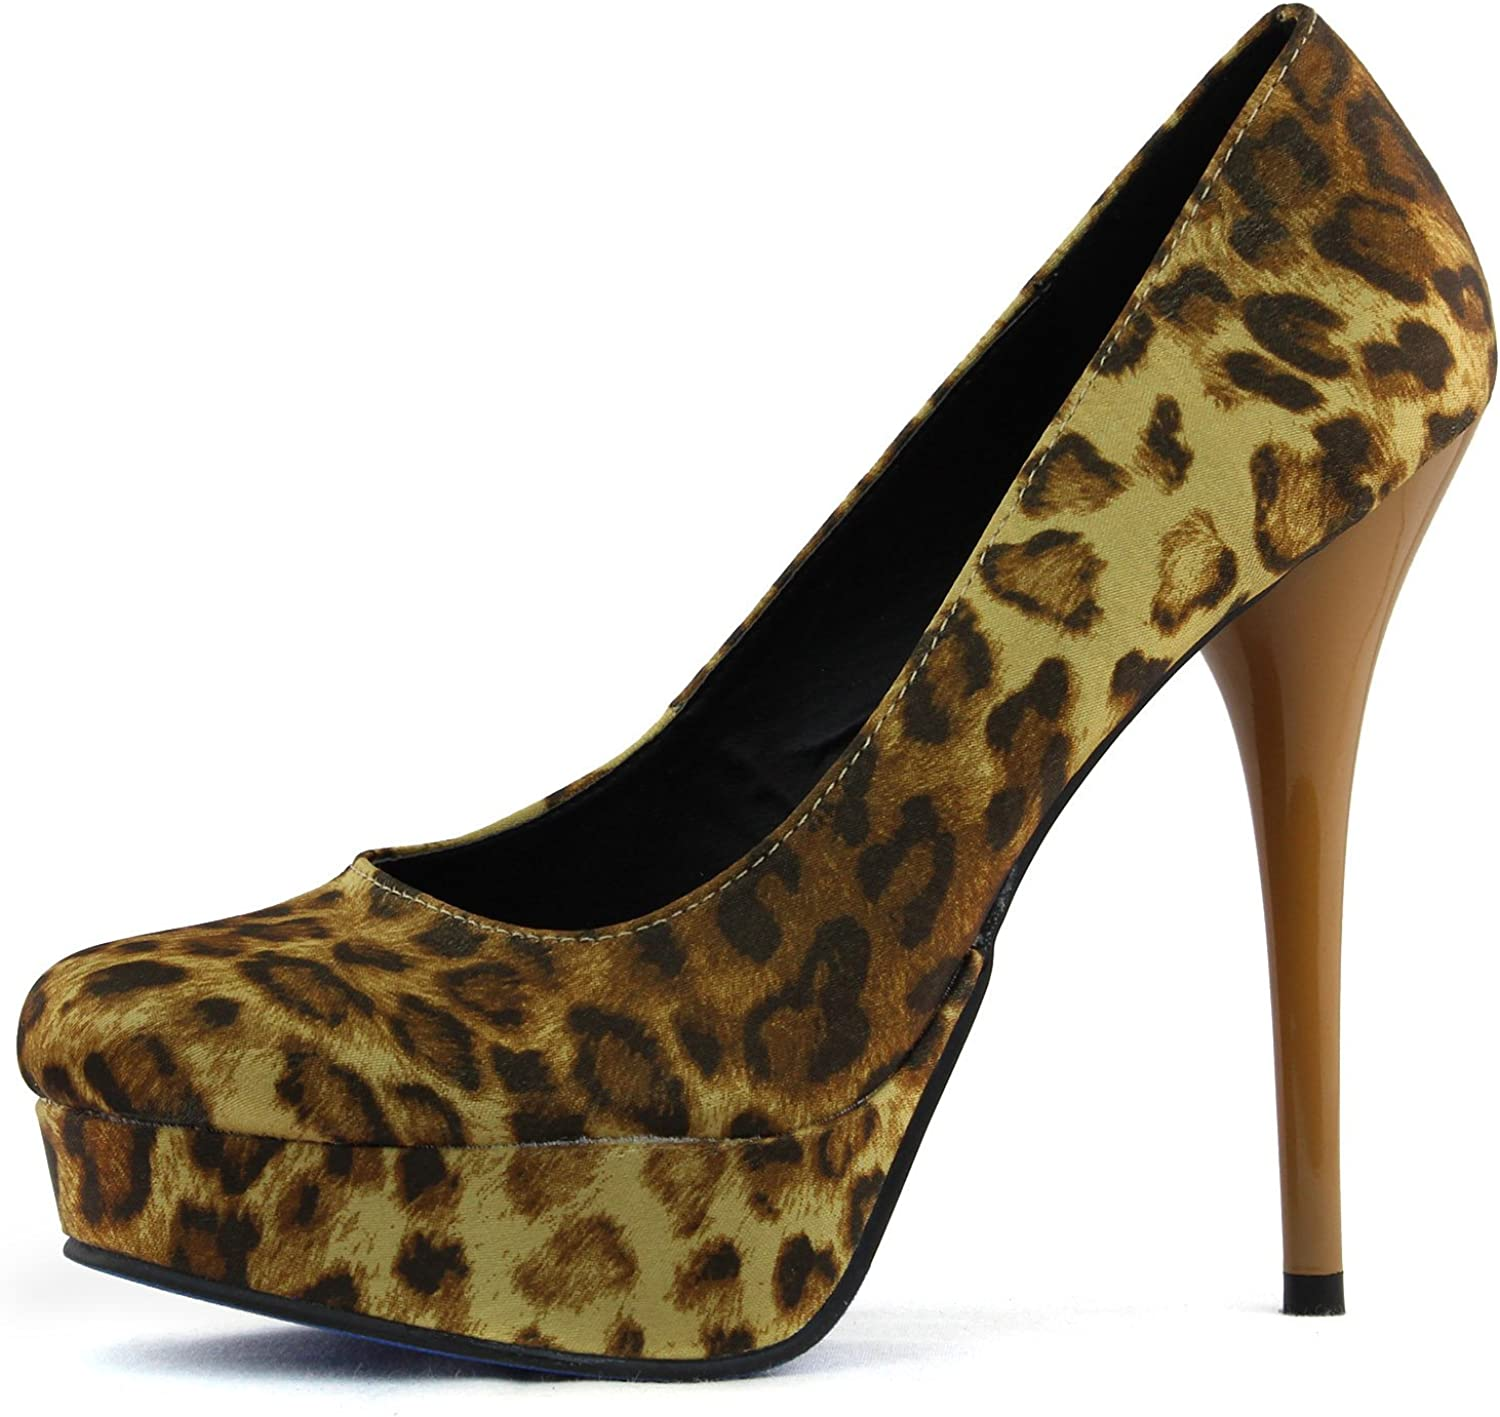 Women's Platform High Heel Satin Animial Print Leopard Pumps Fashion shoes